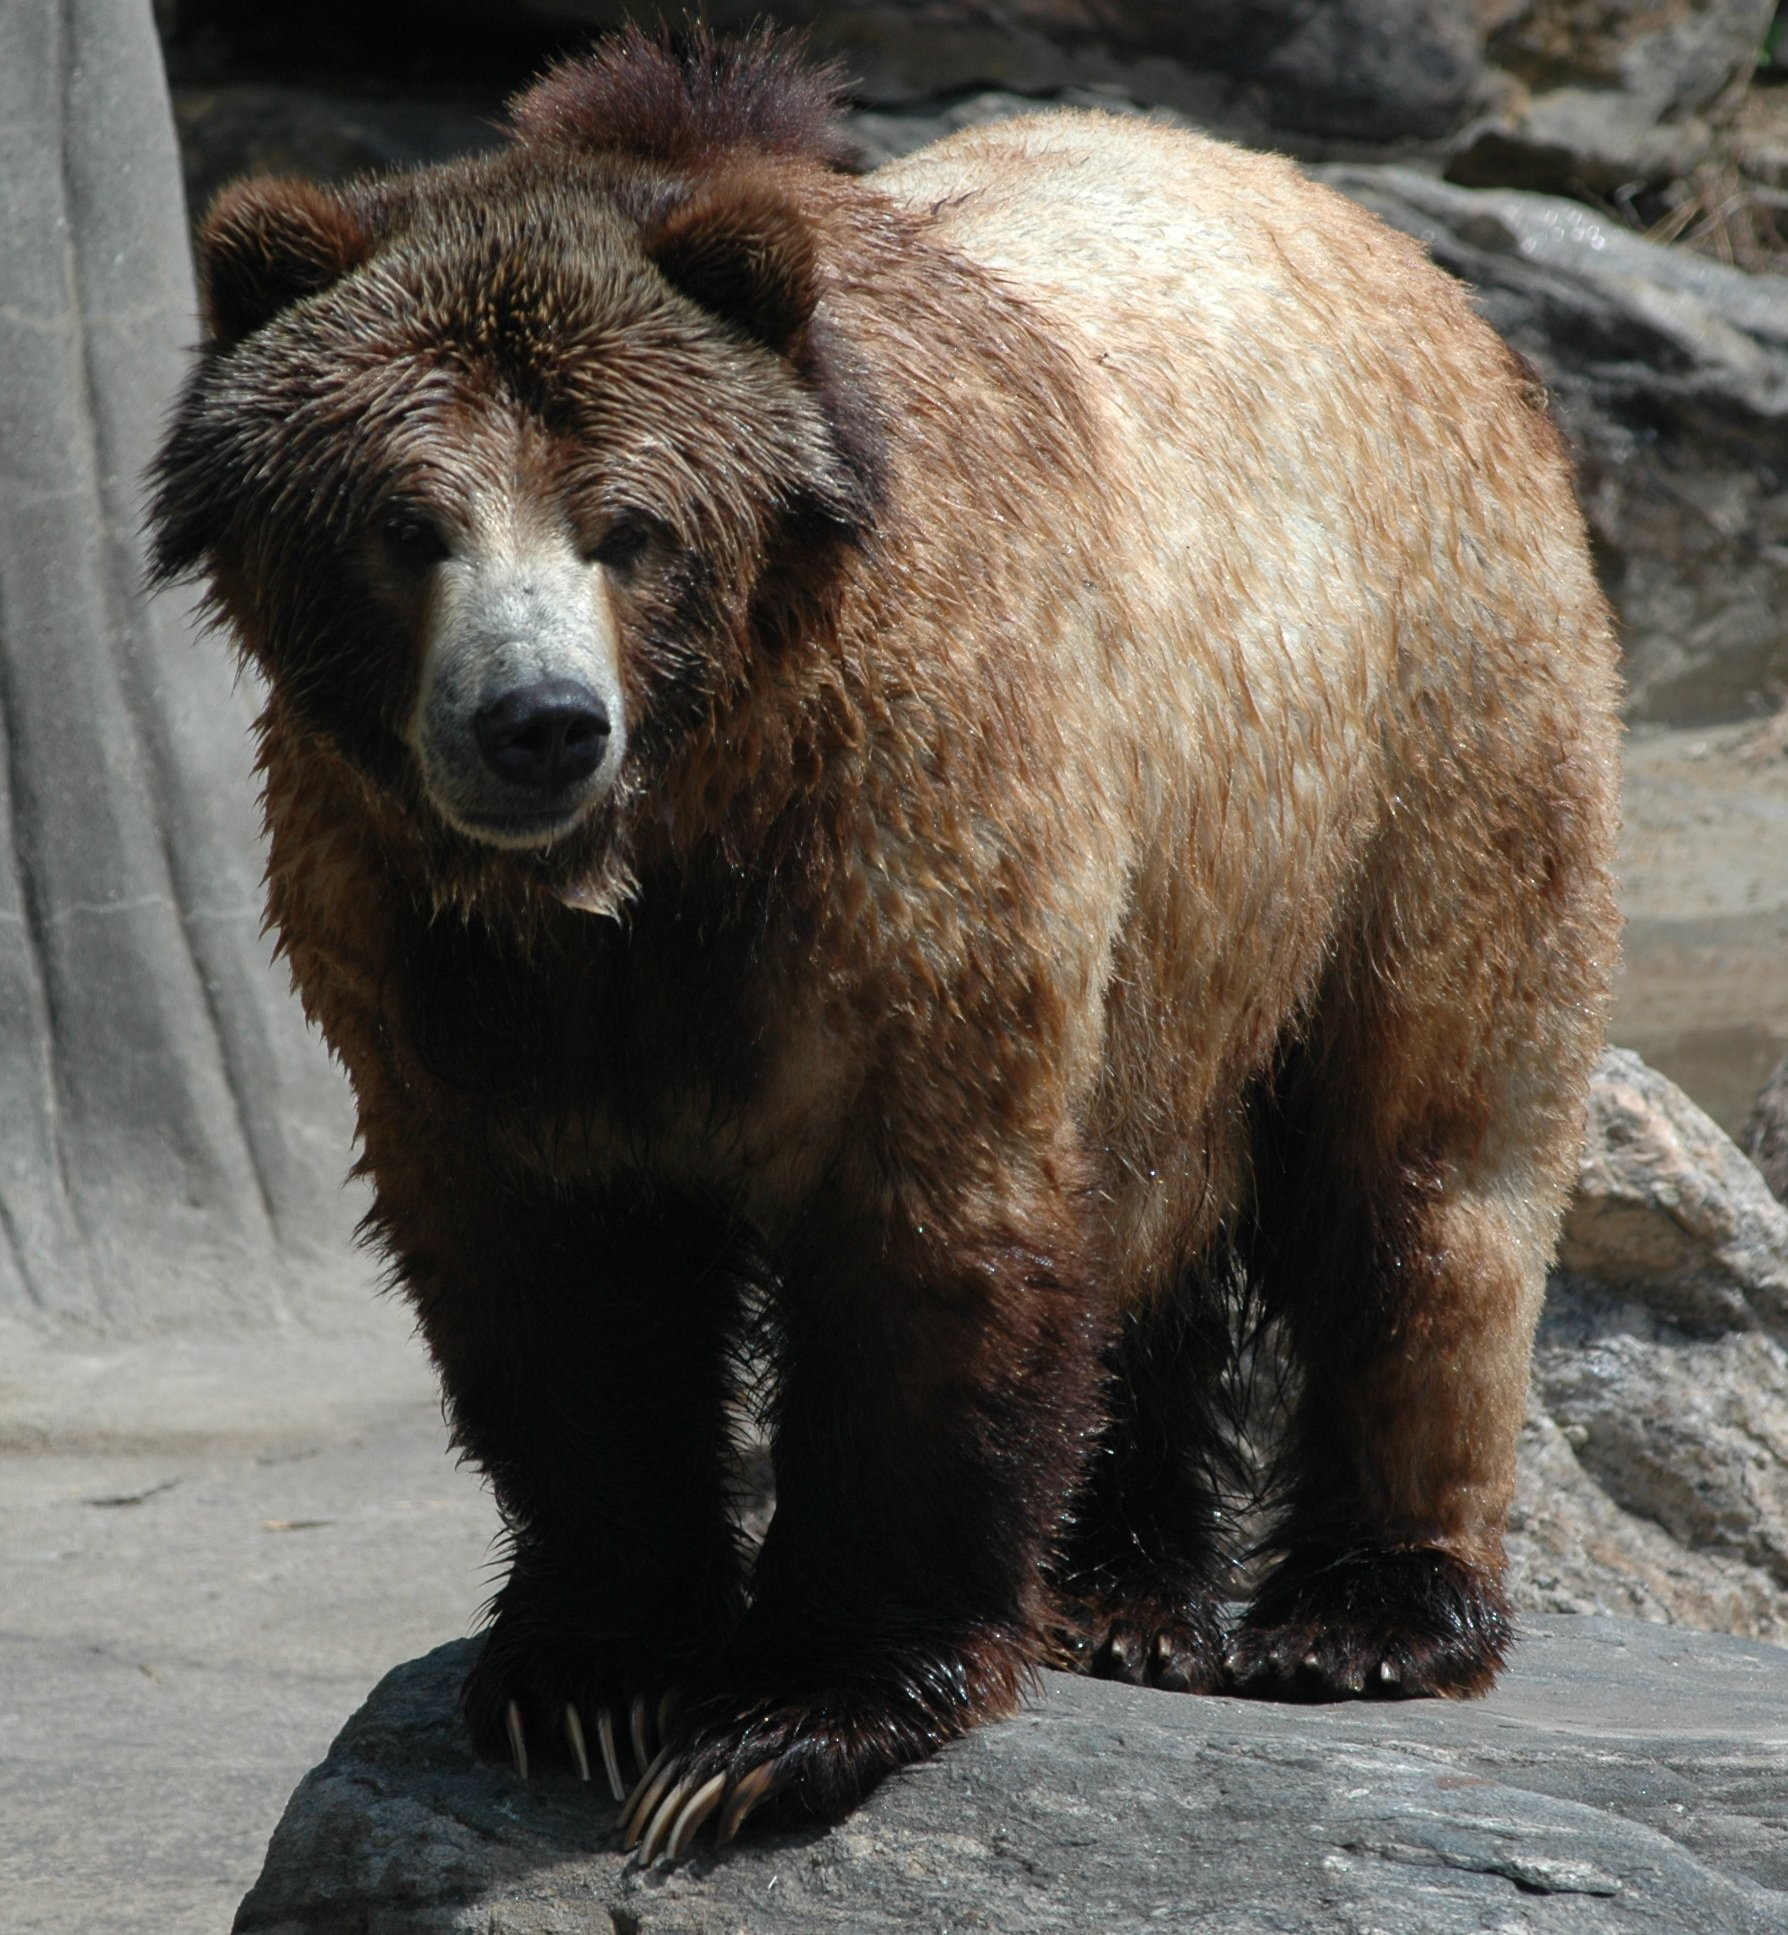 http://www1.cs.columbia.edu/~sedwards/photos/kyle200604/20060412-7108%20Grizzly%20bear.jpg